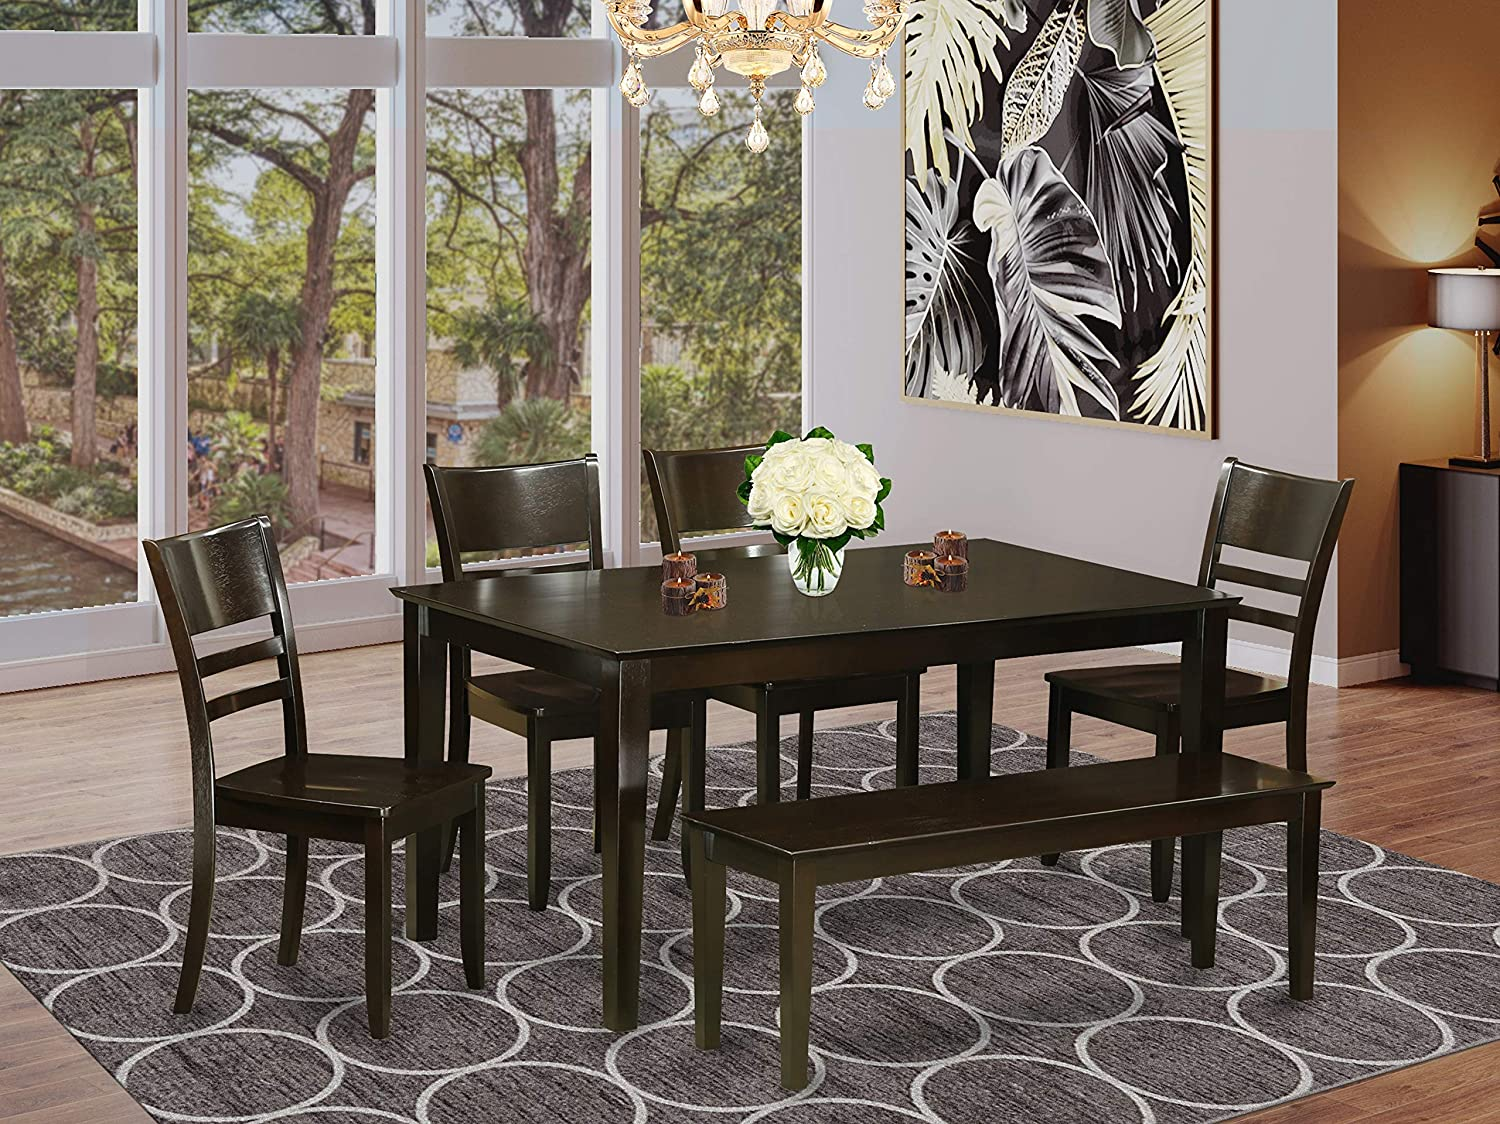 East West Furniture Rectangular Dining Table Set 9 Pc   Wooden Dining  Chairs Seat   Cappuccino Finish Small Rectangular Table and Kitchen Dining  Bench